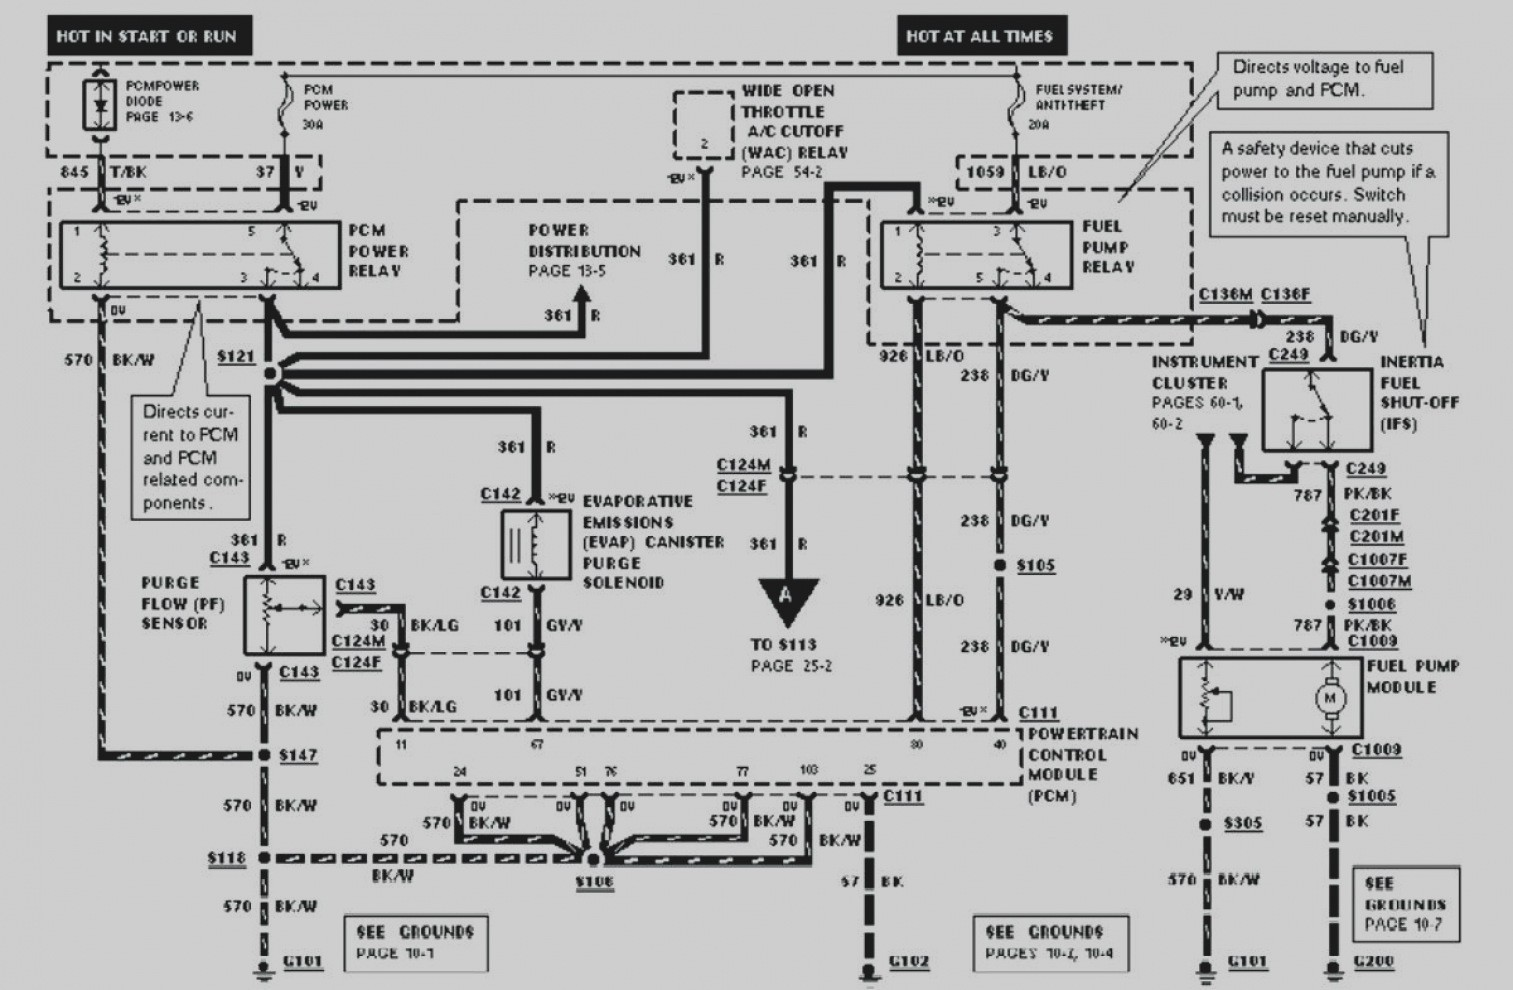 3758 fleetwood rv 7 wire diagram | wiring resources  wiring resources